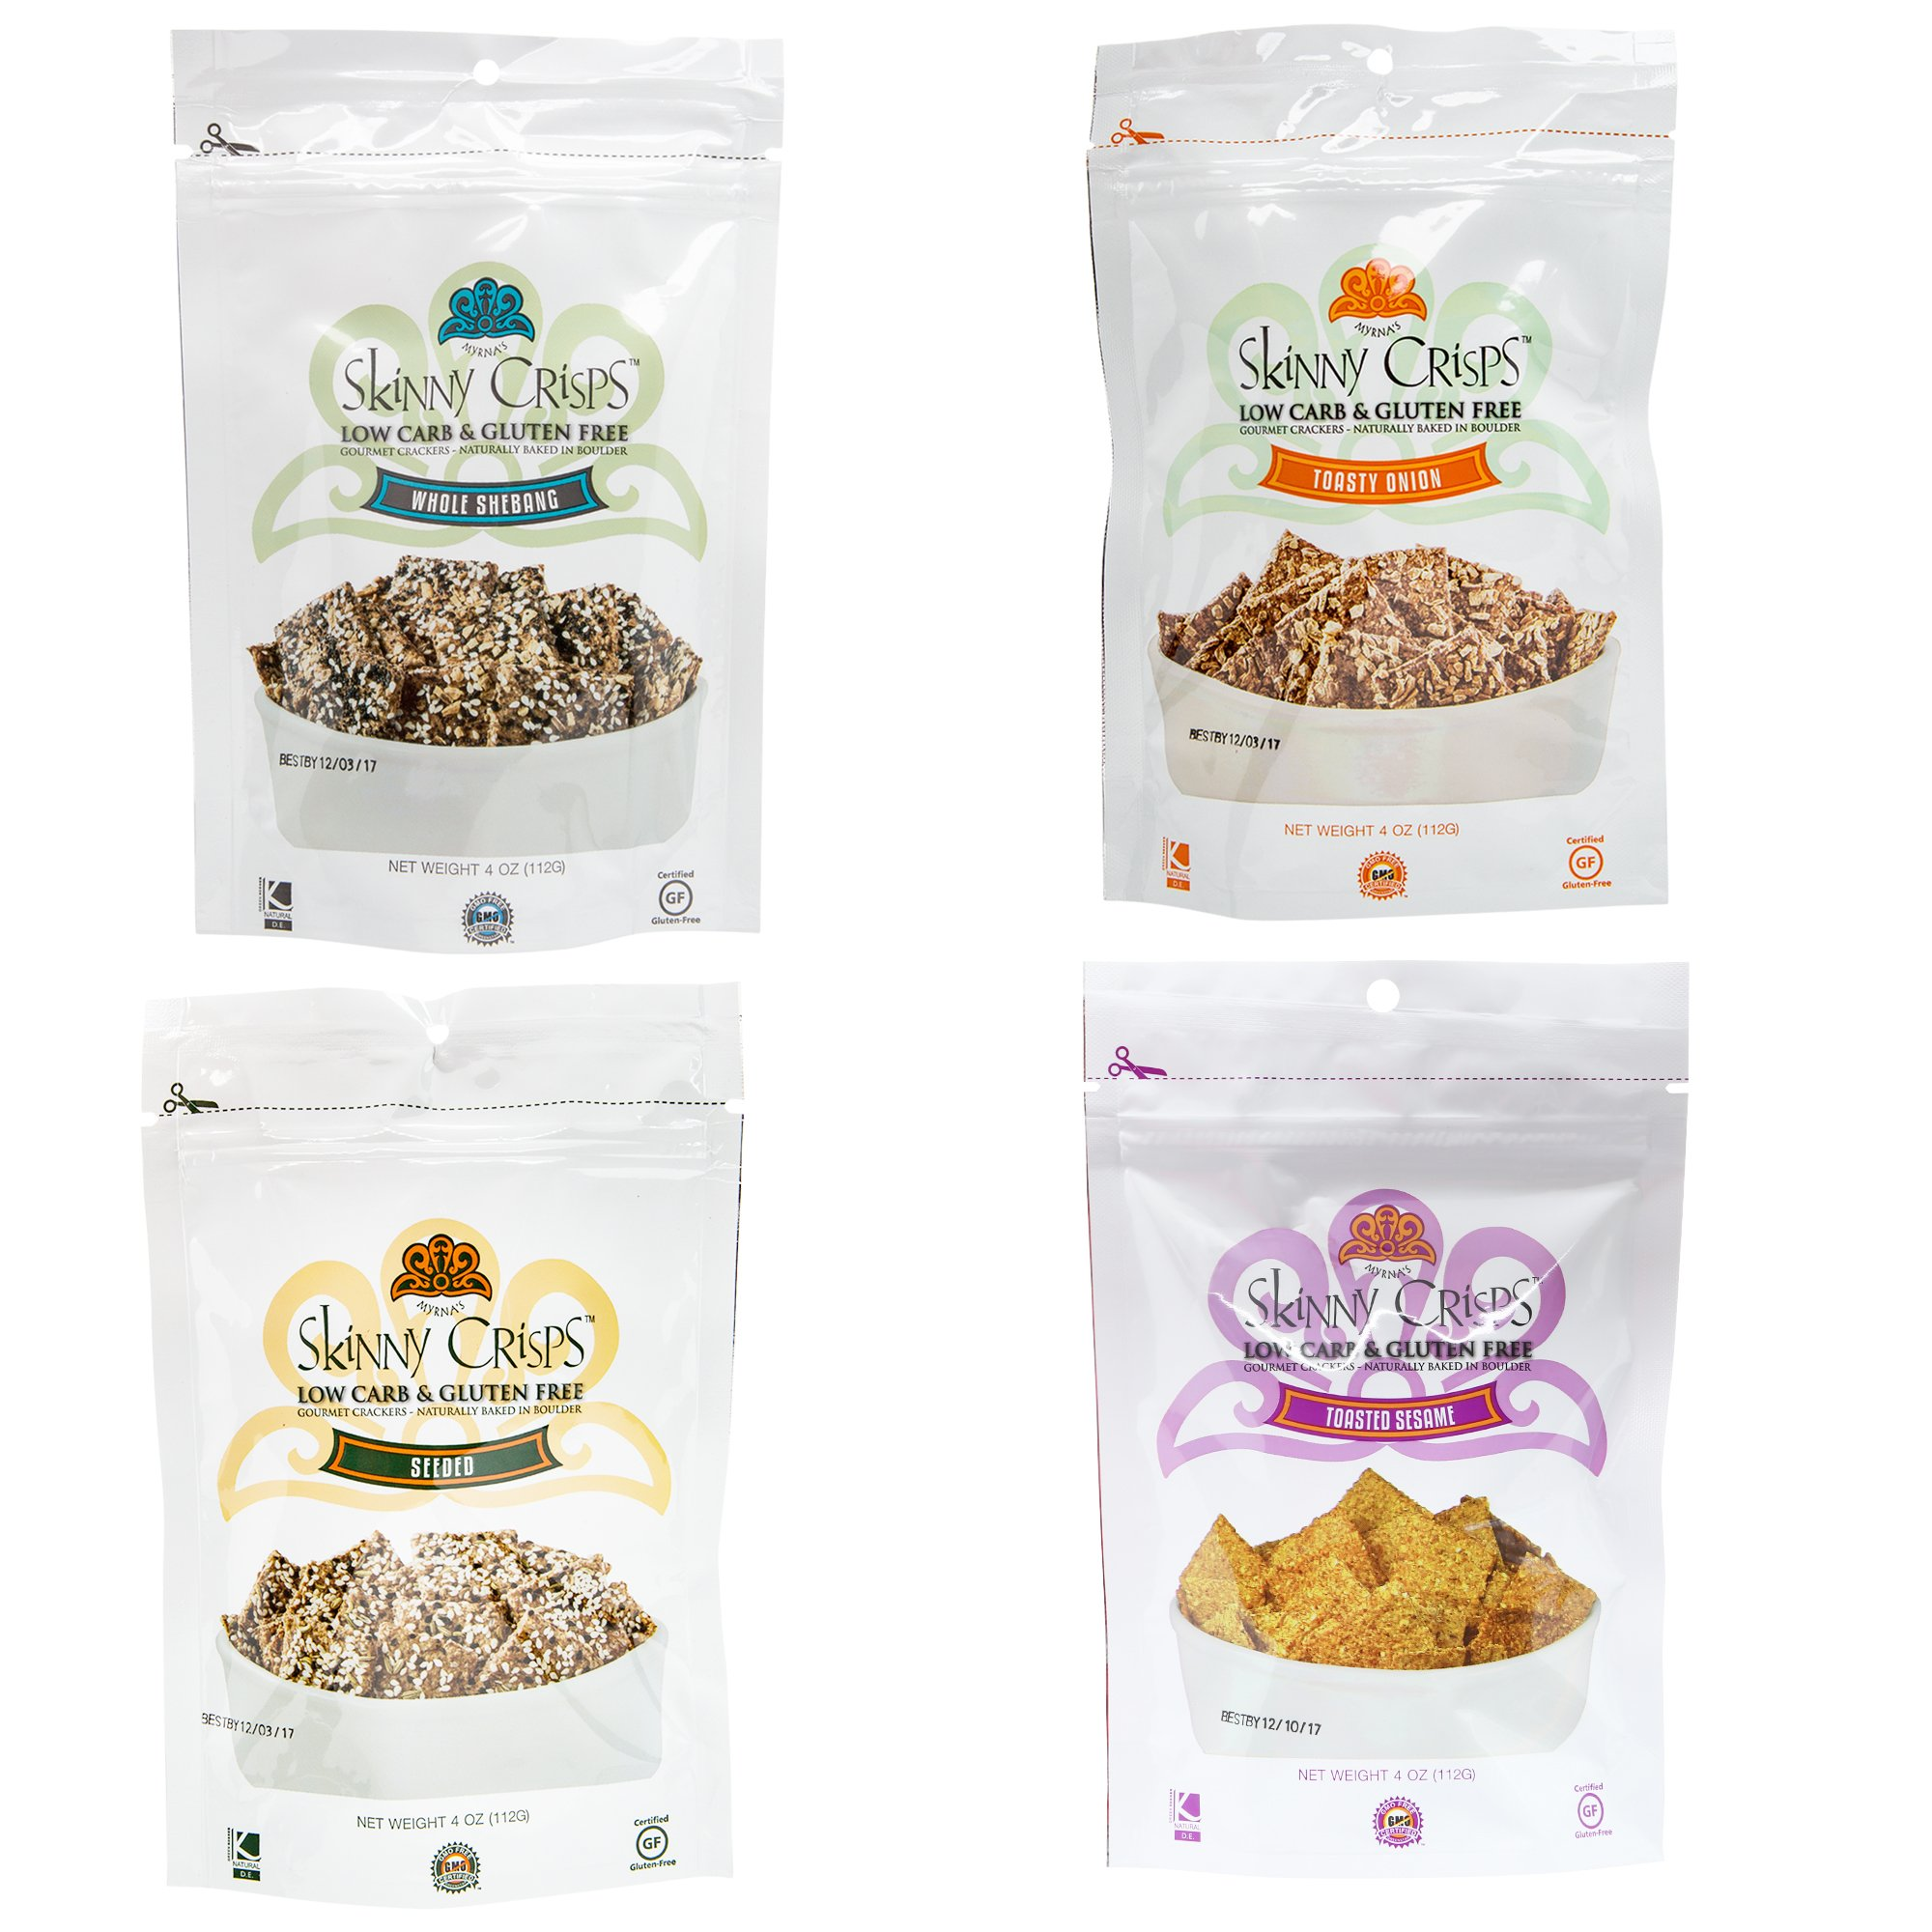 Skinny Crisps Low Carb Gluten Free Crackers Variety Pack (4 Flavors Value Pack)